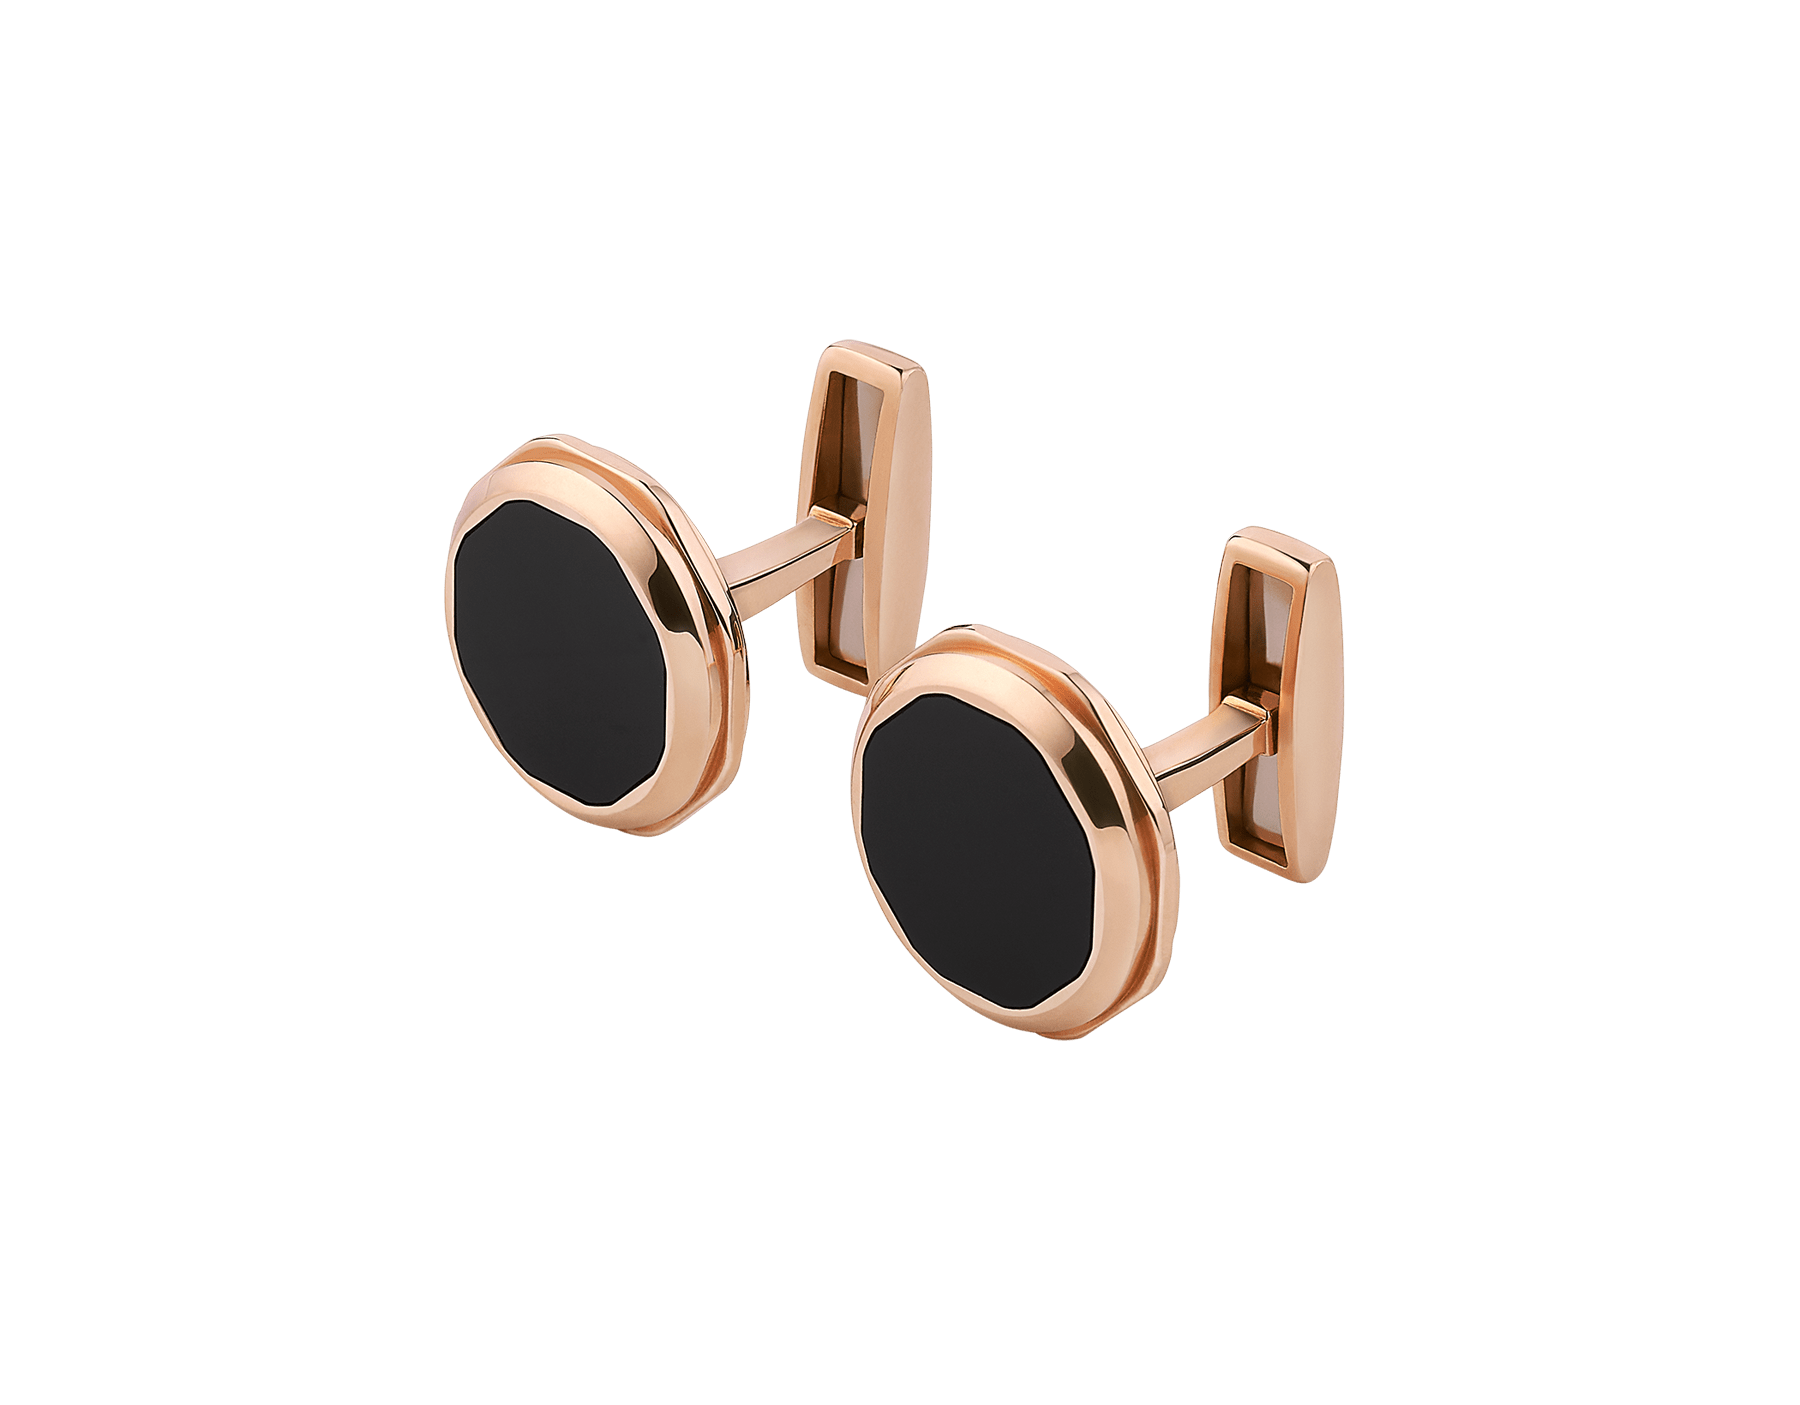 Octo 18 kt rose gold cufflinks set with onyx elements 348330 image 2